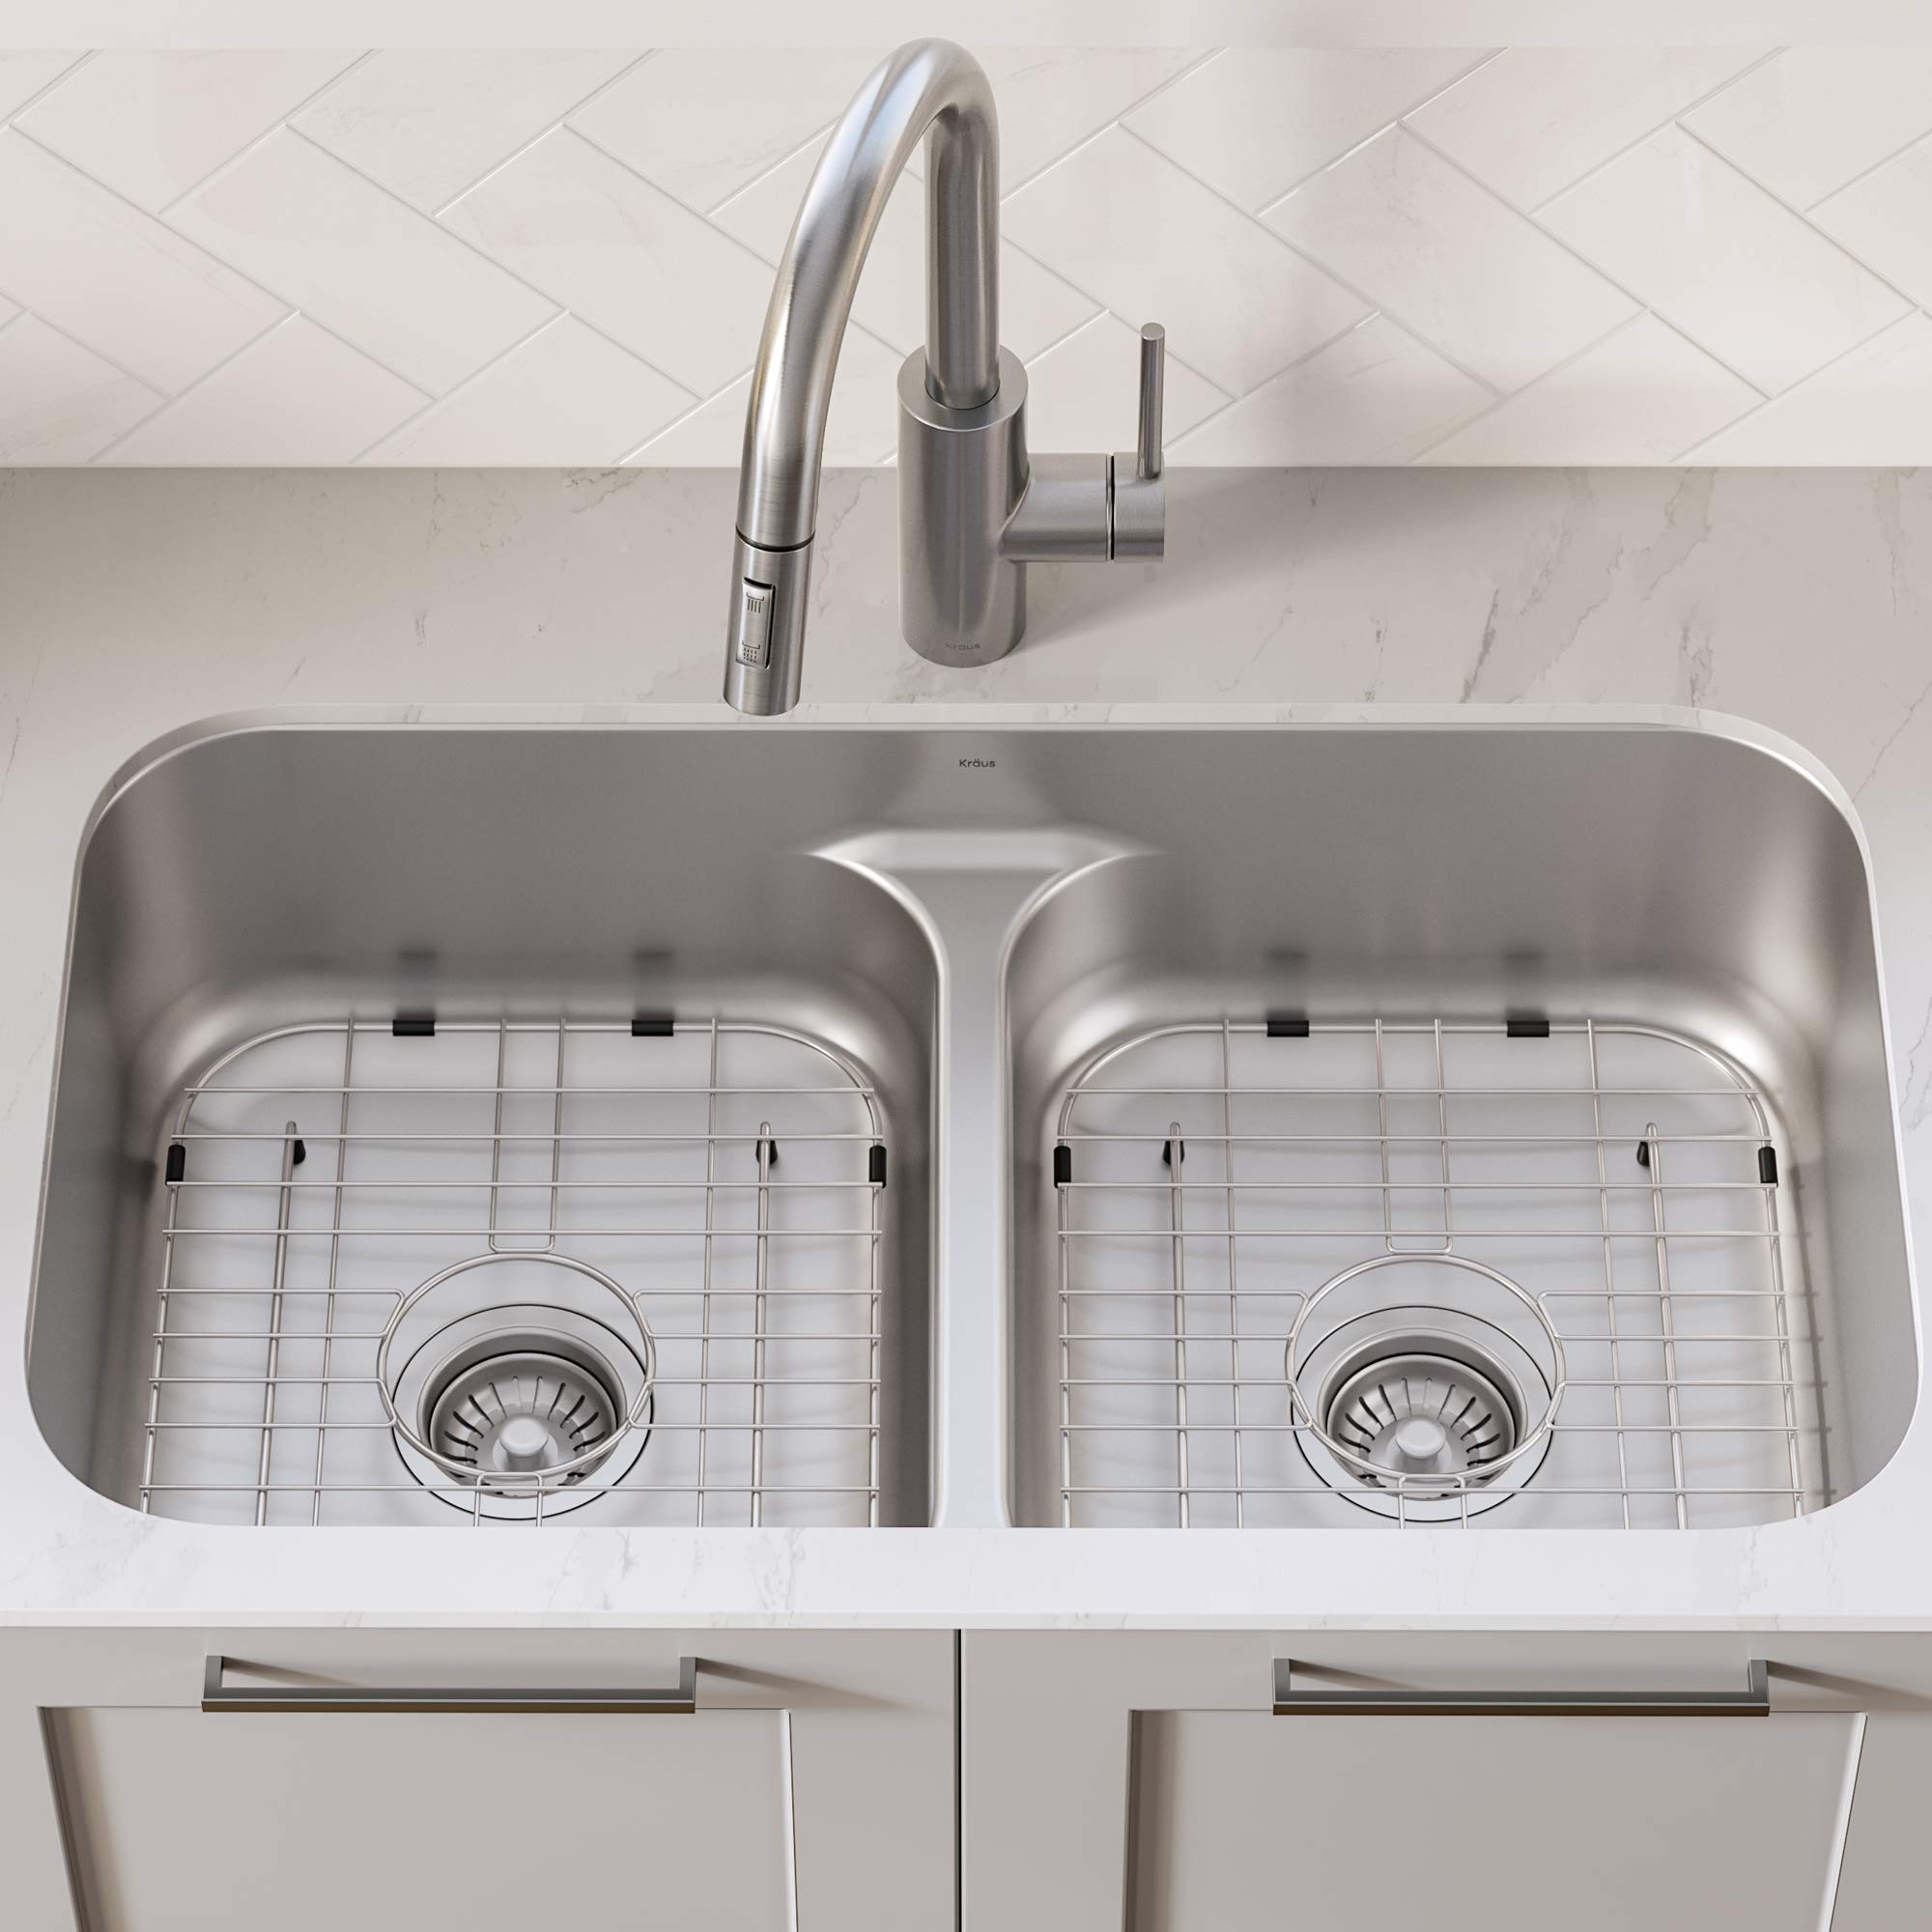 KRAUS KBU32 Premier 32-inch 16 Gauge Undermount 50/50 Double Bowl Kitchen Sink with Smart Low Divider by Kraus (Image #3)